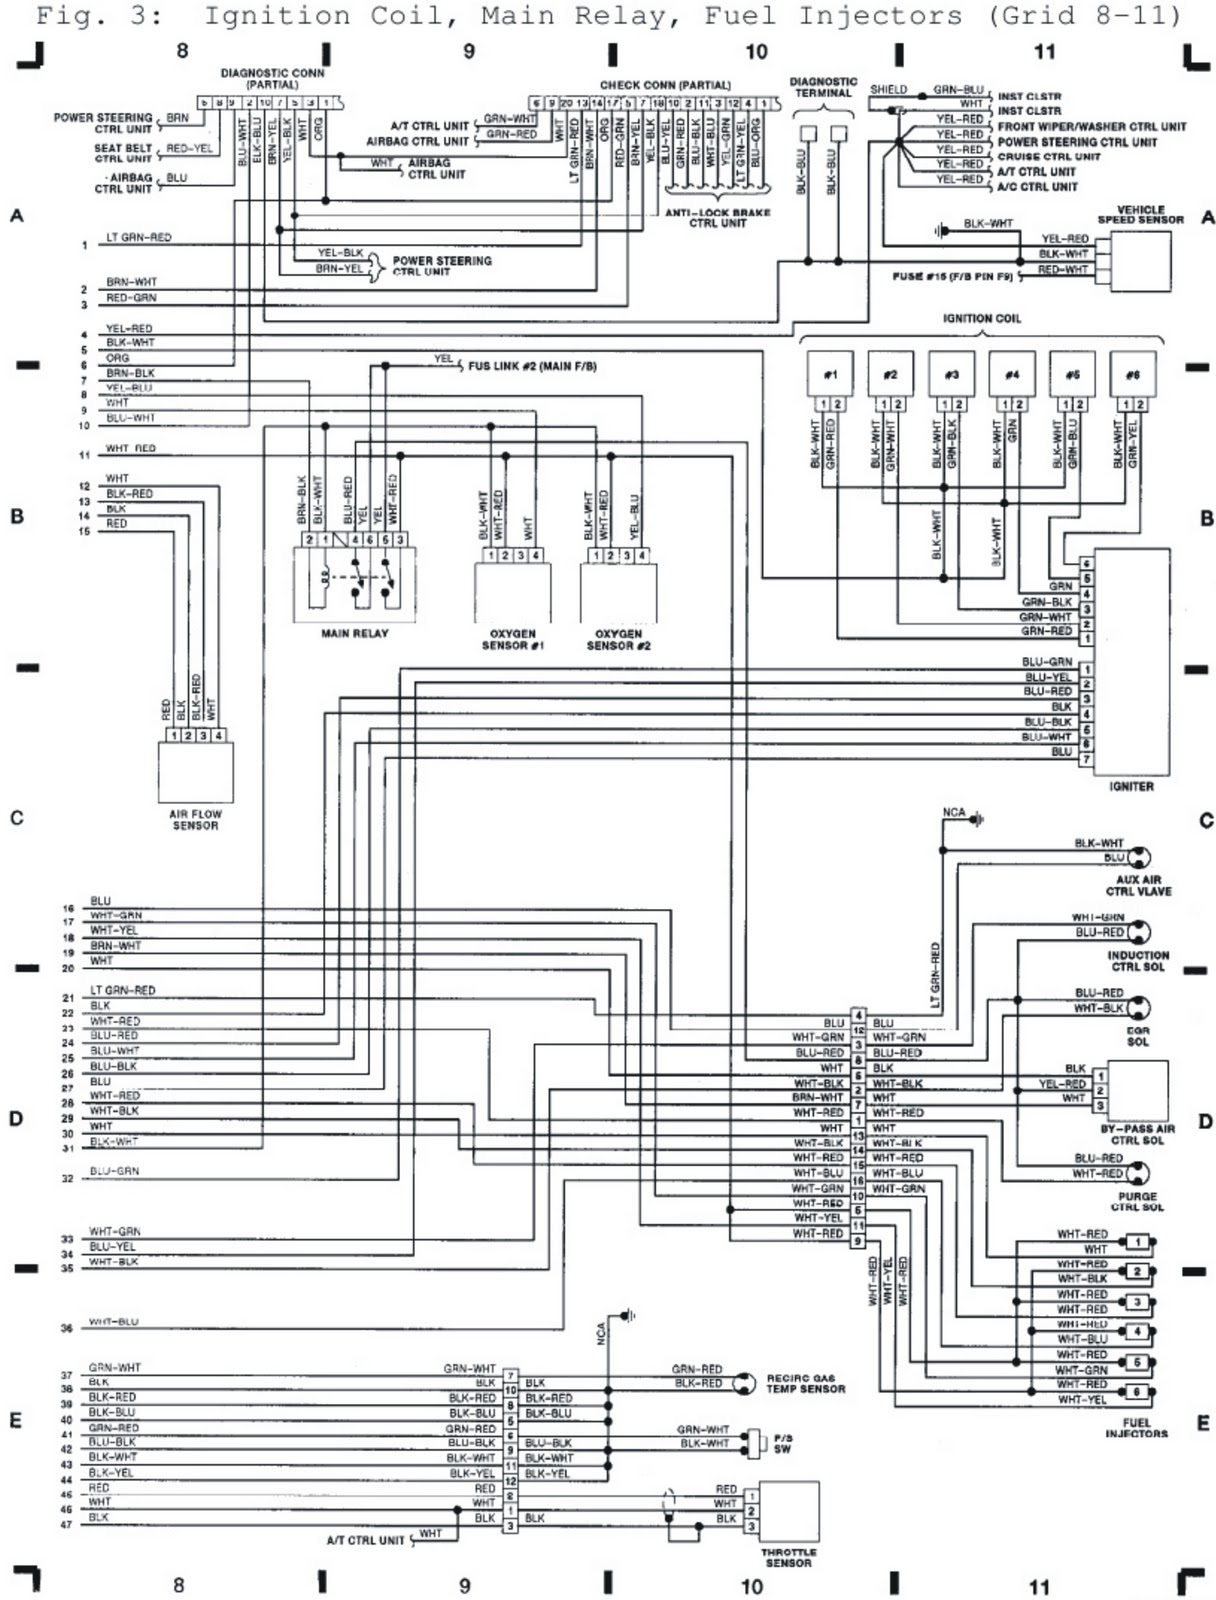 Subaru Legacy Ignition System Wiring Diagram All Kind Of 1996 Schematic 1992 Coil Main Relay Fuel Injectors Diagrams